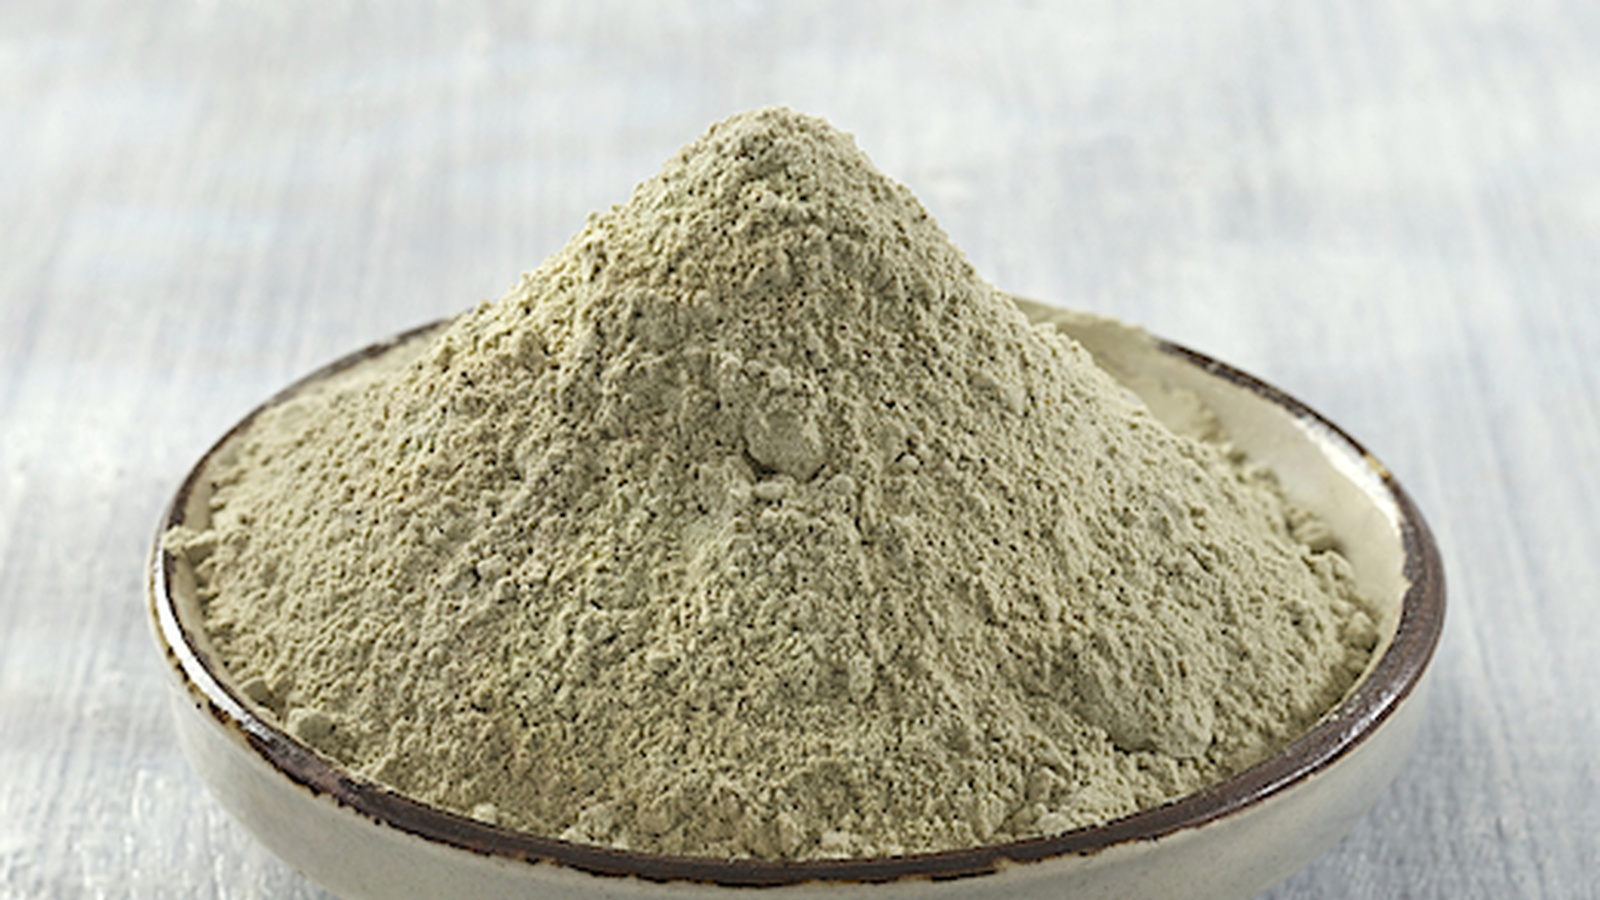 Bentonite Clay - A Safe and Effective Detox From Radiation Build Up